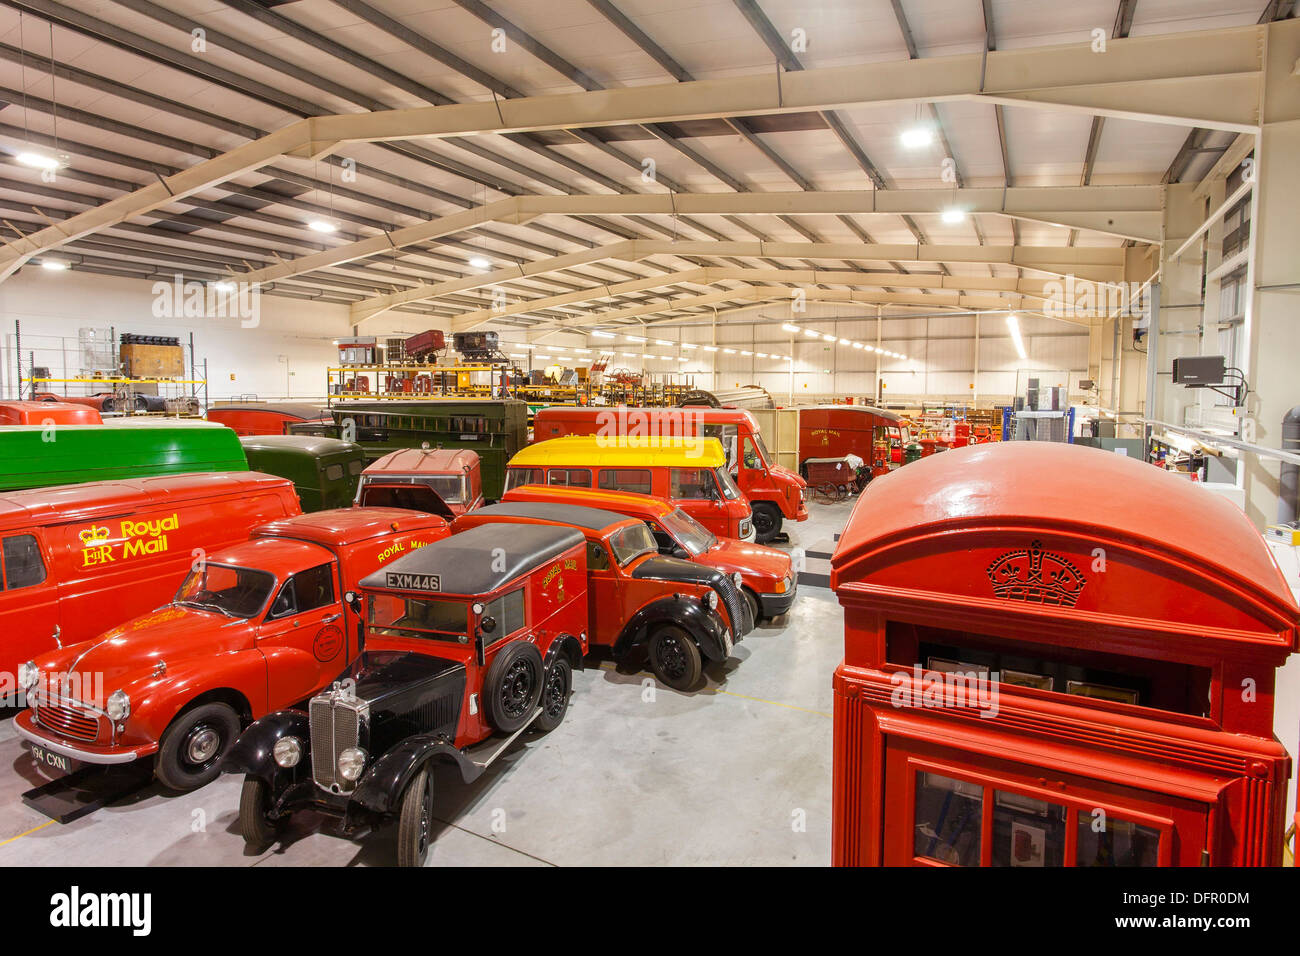 A view of the British Postal Museum Store in Debden. Alongside the historic telephone kiosks a number of vehicles can be seen, including the Morris Eight hybrid van from 1938, and a 1961 Morris Minor Van, - Stock Image